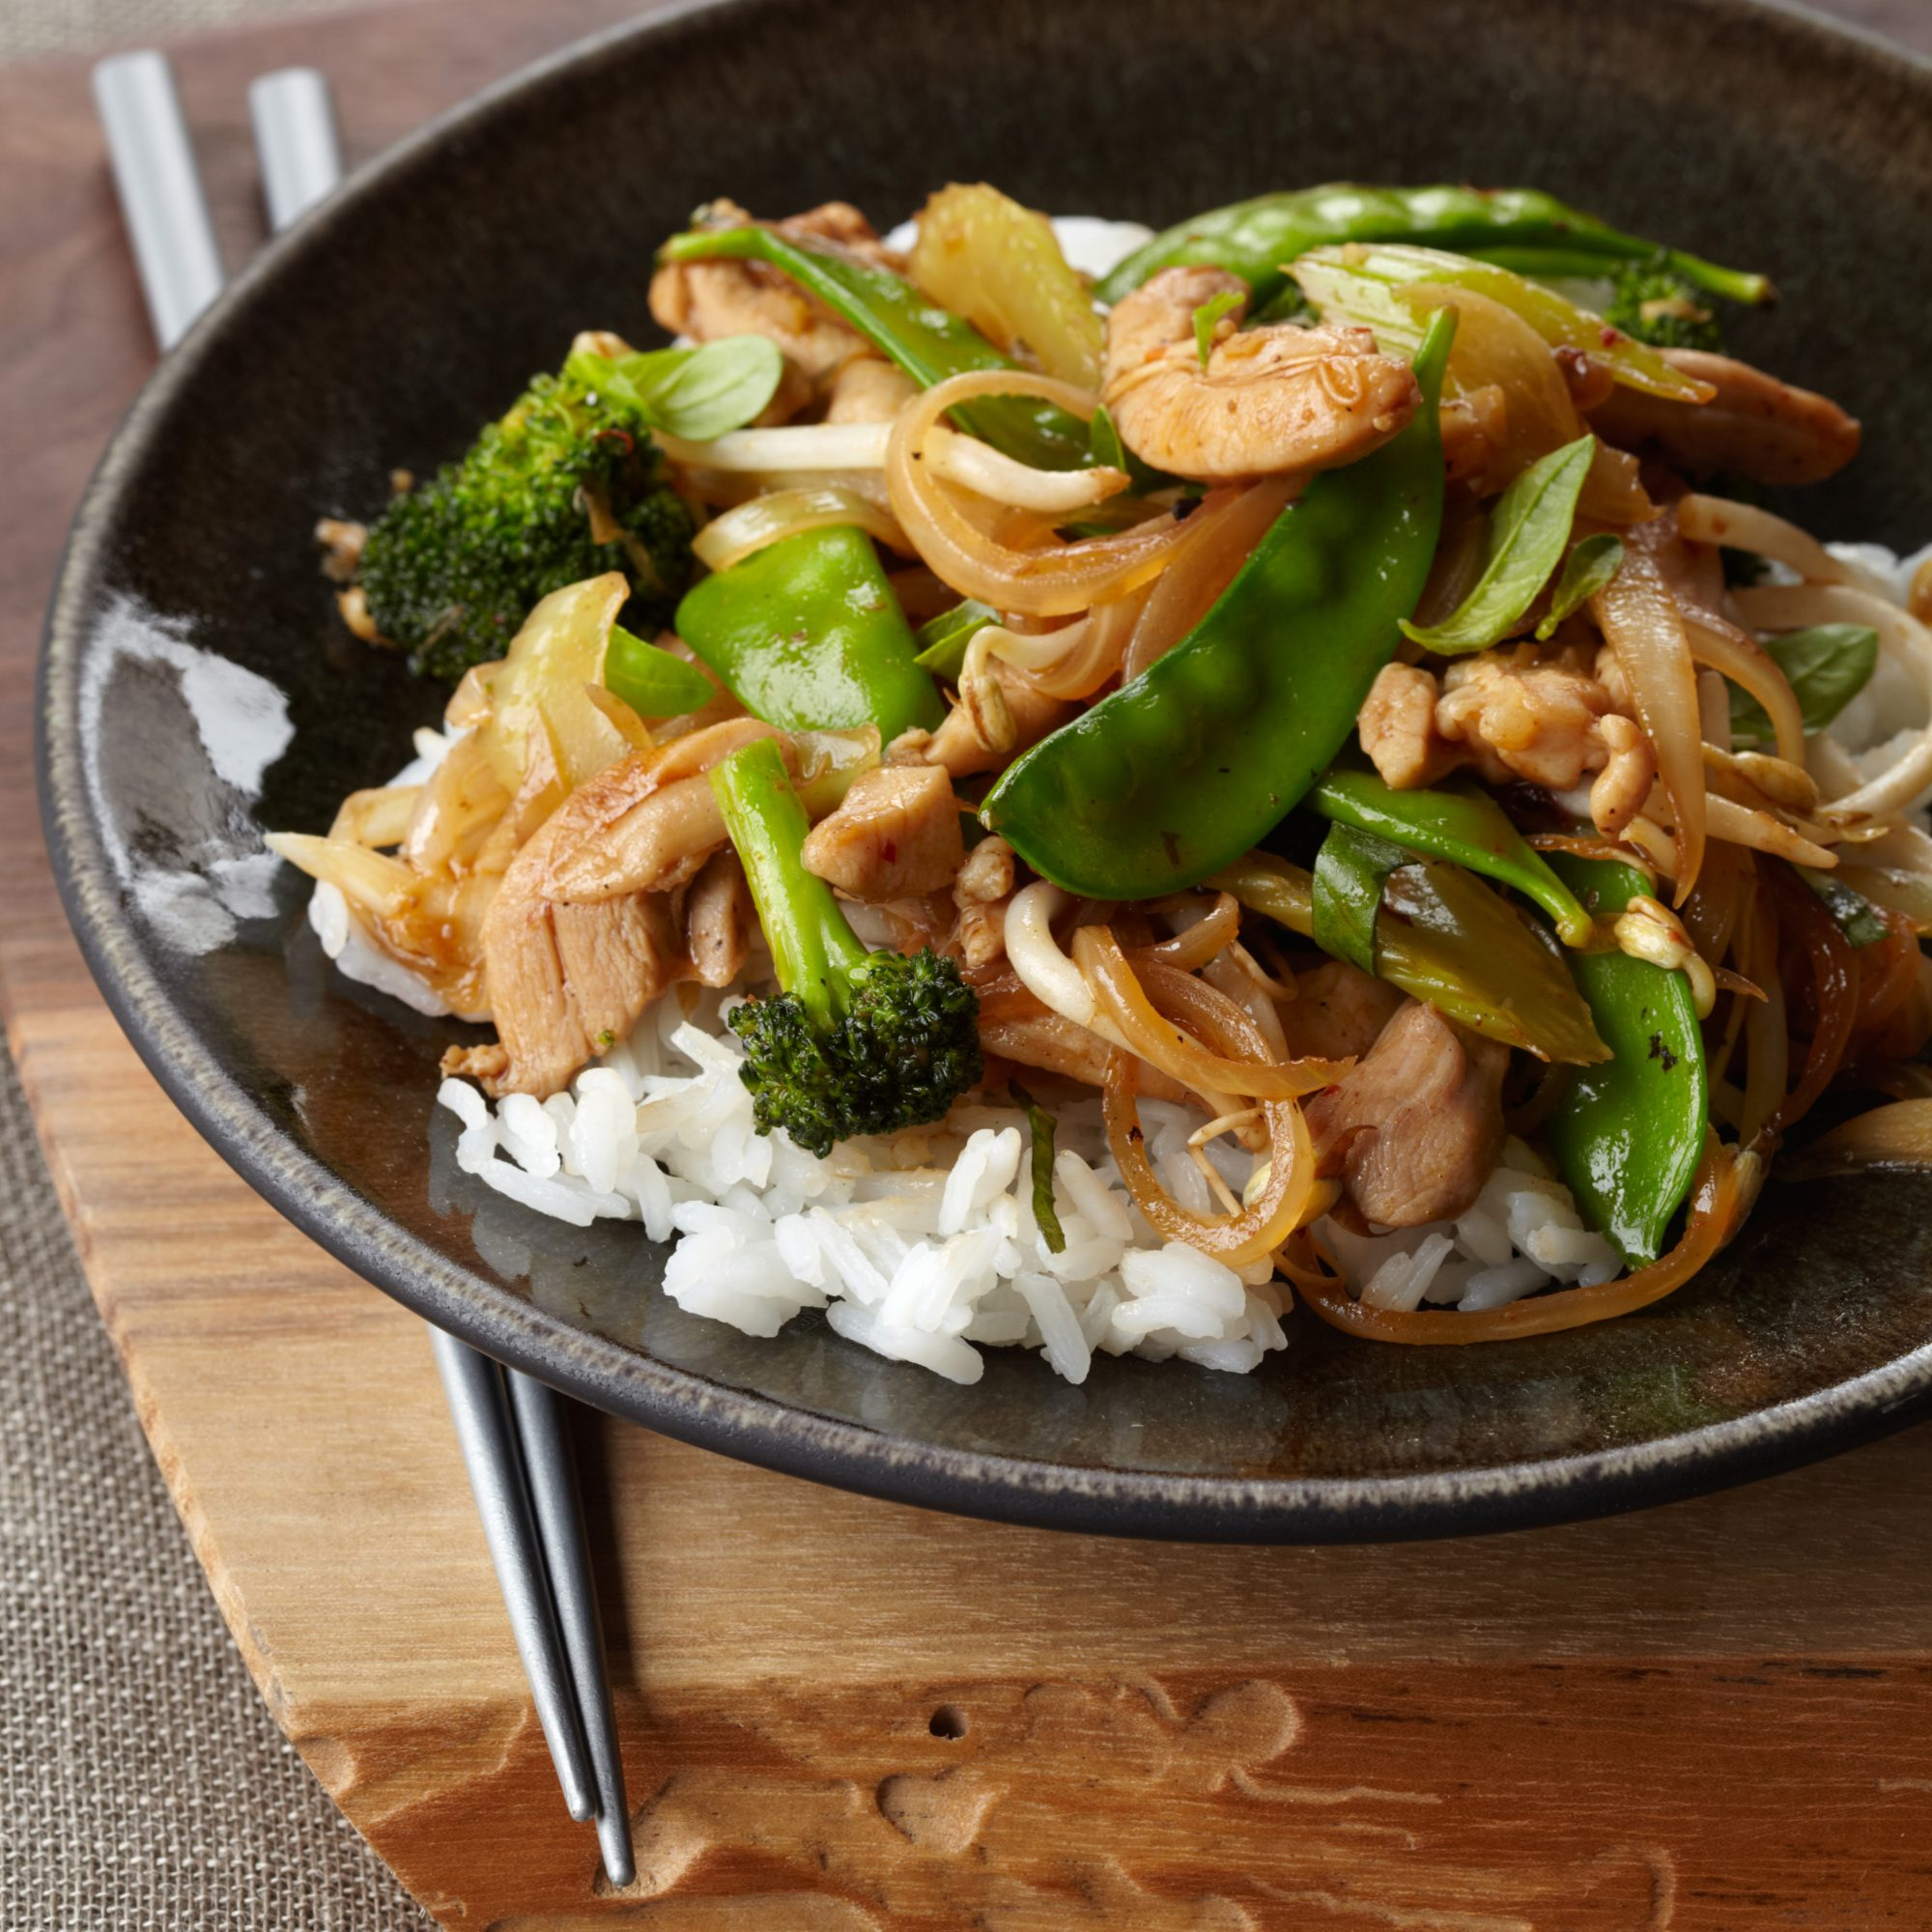 201009-r-vegetable-stir-fry.jpg